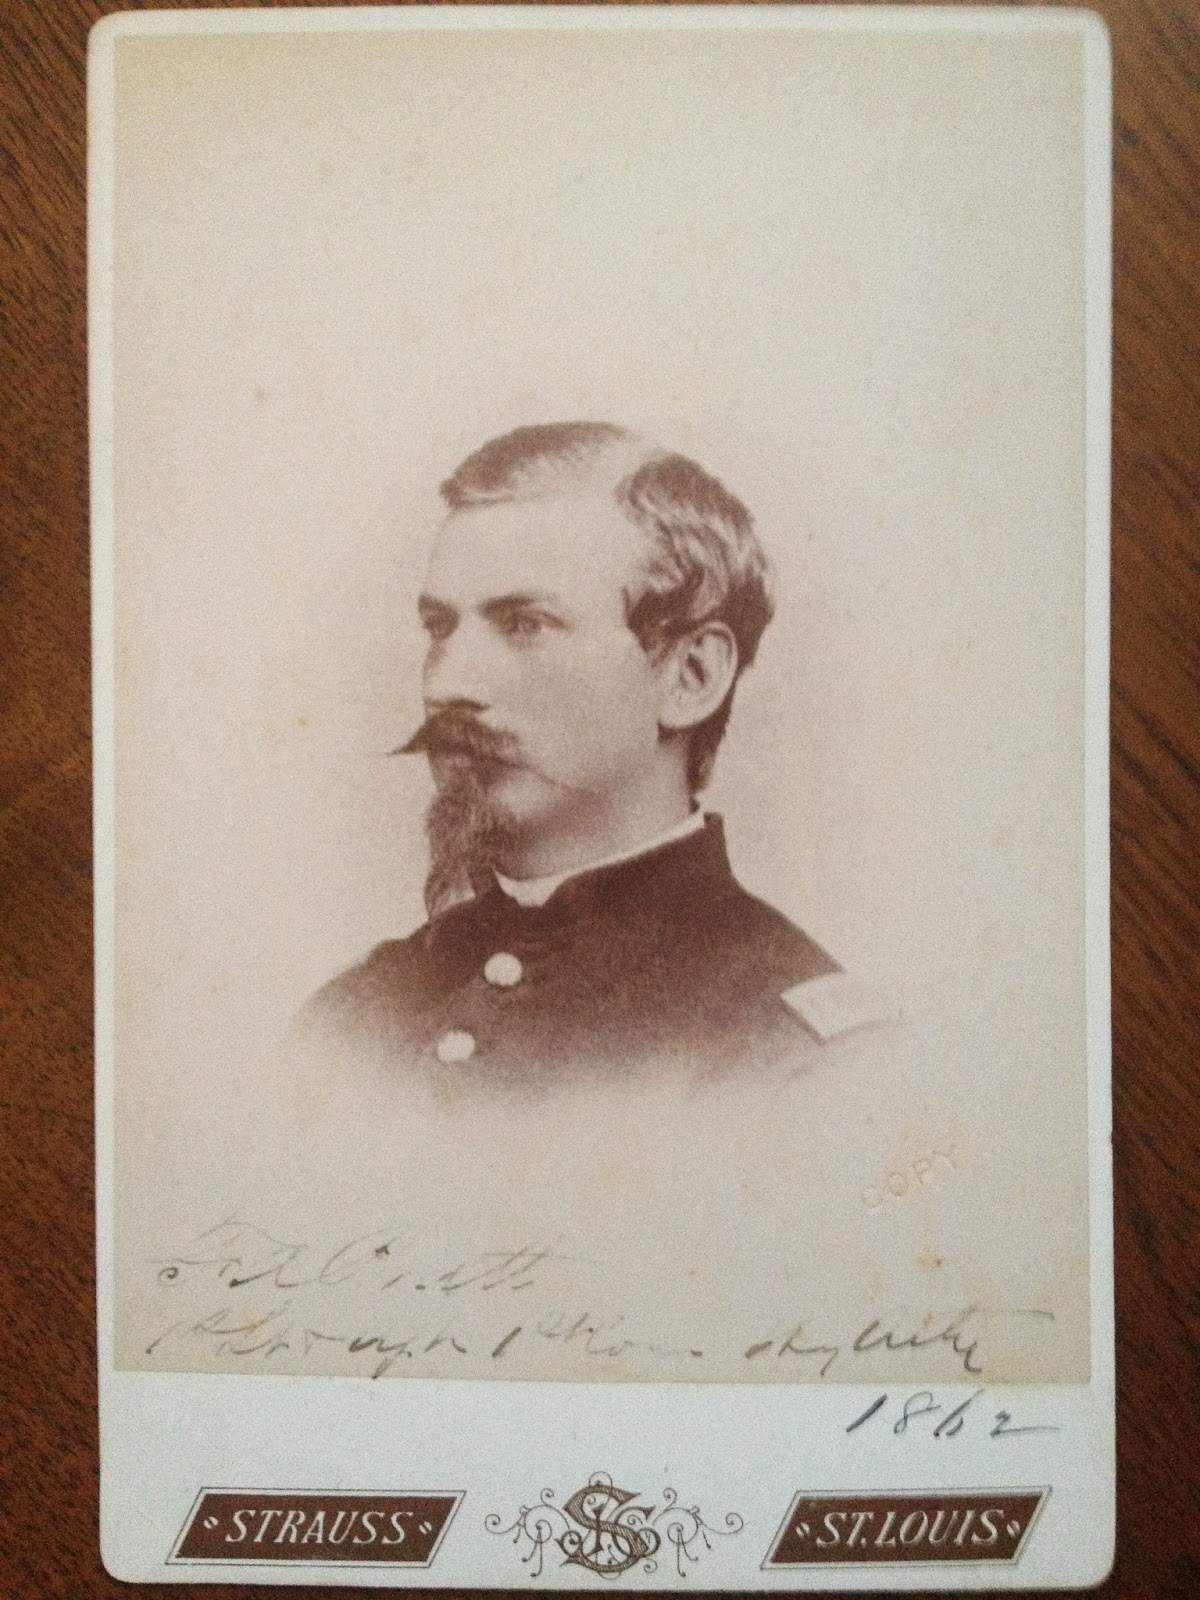 Olive Tree Genealogy Blog: Civil War Photos Found in Vermont Attic